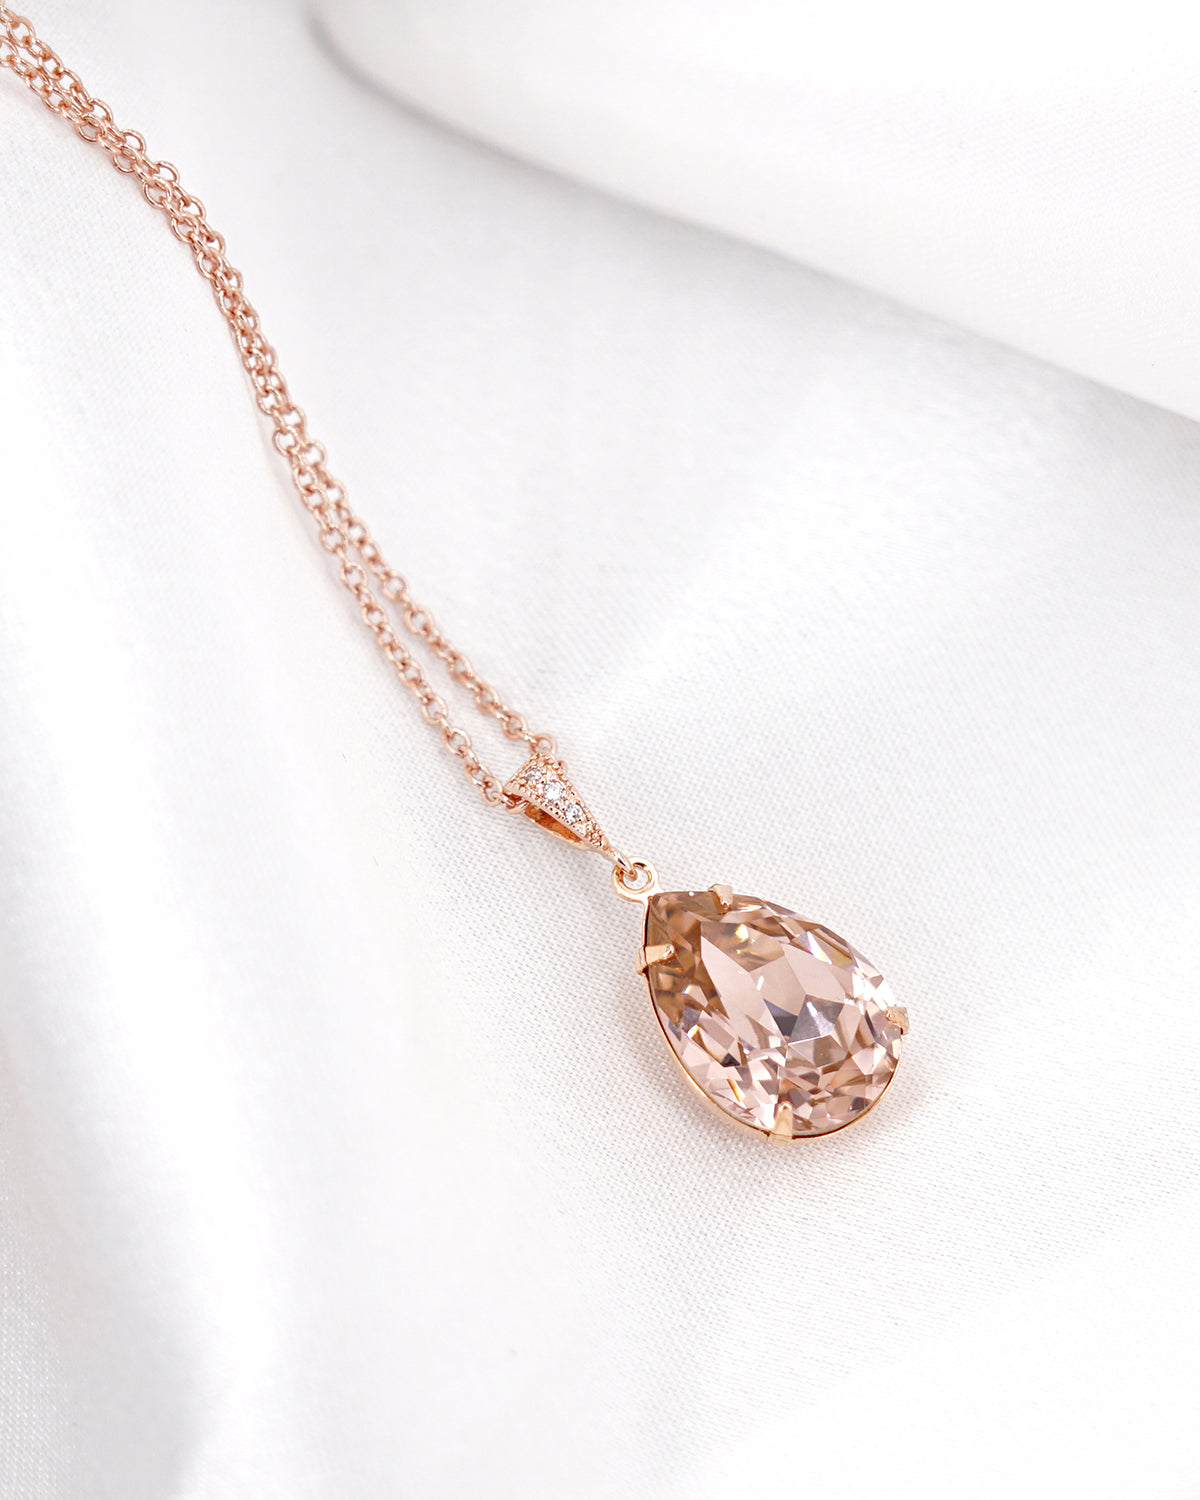 Pink Crystal Necklace | Simple Colorful Jewelry | Bridal Bridesmaid